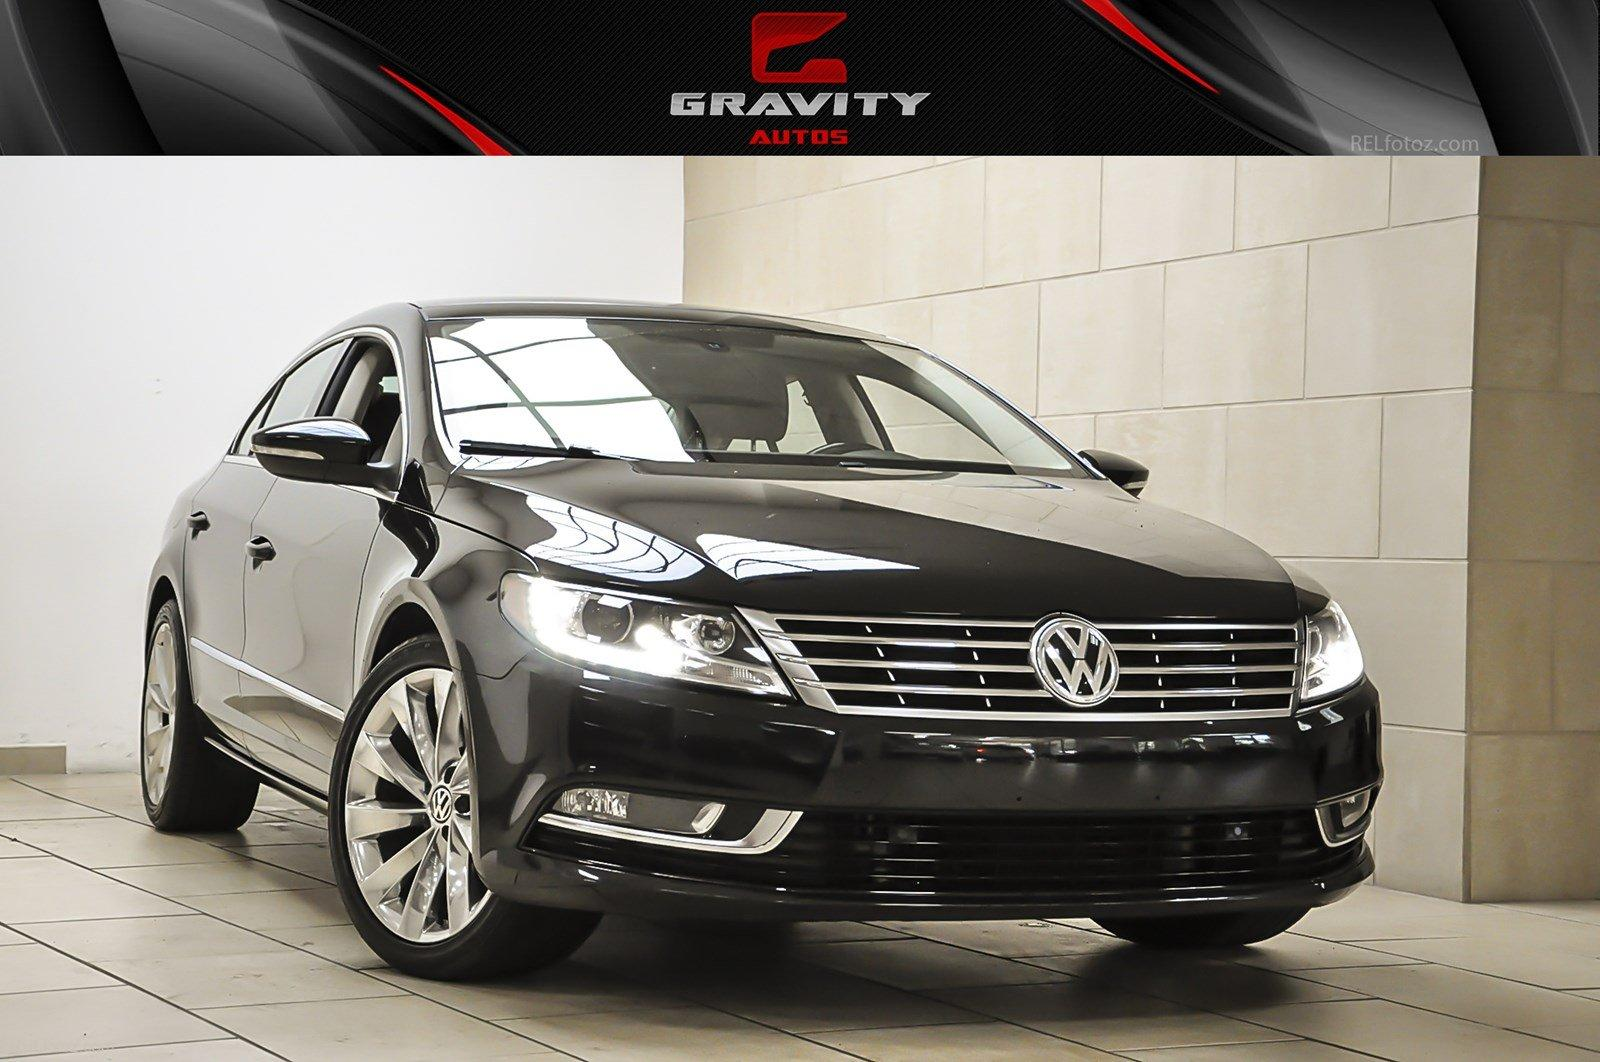 2013 volkswagen cc vr6 executive 4motion stock 532701. Black Bedroom Furniture Sets. Home Design Ideas